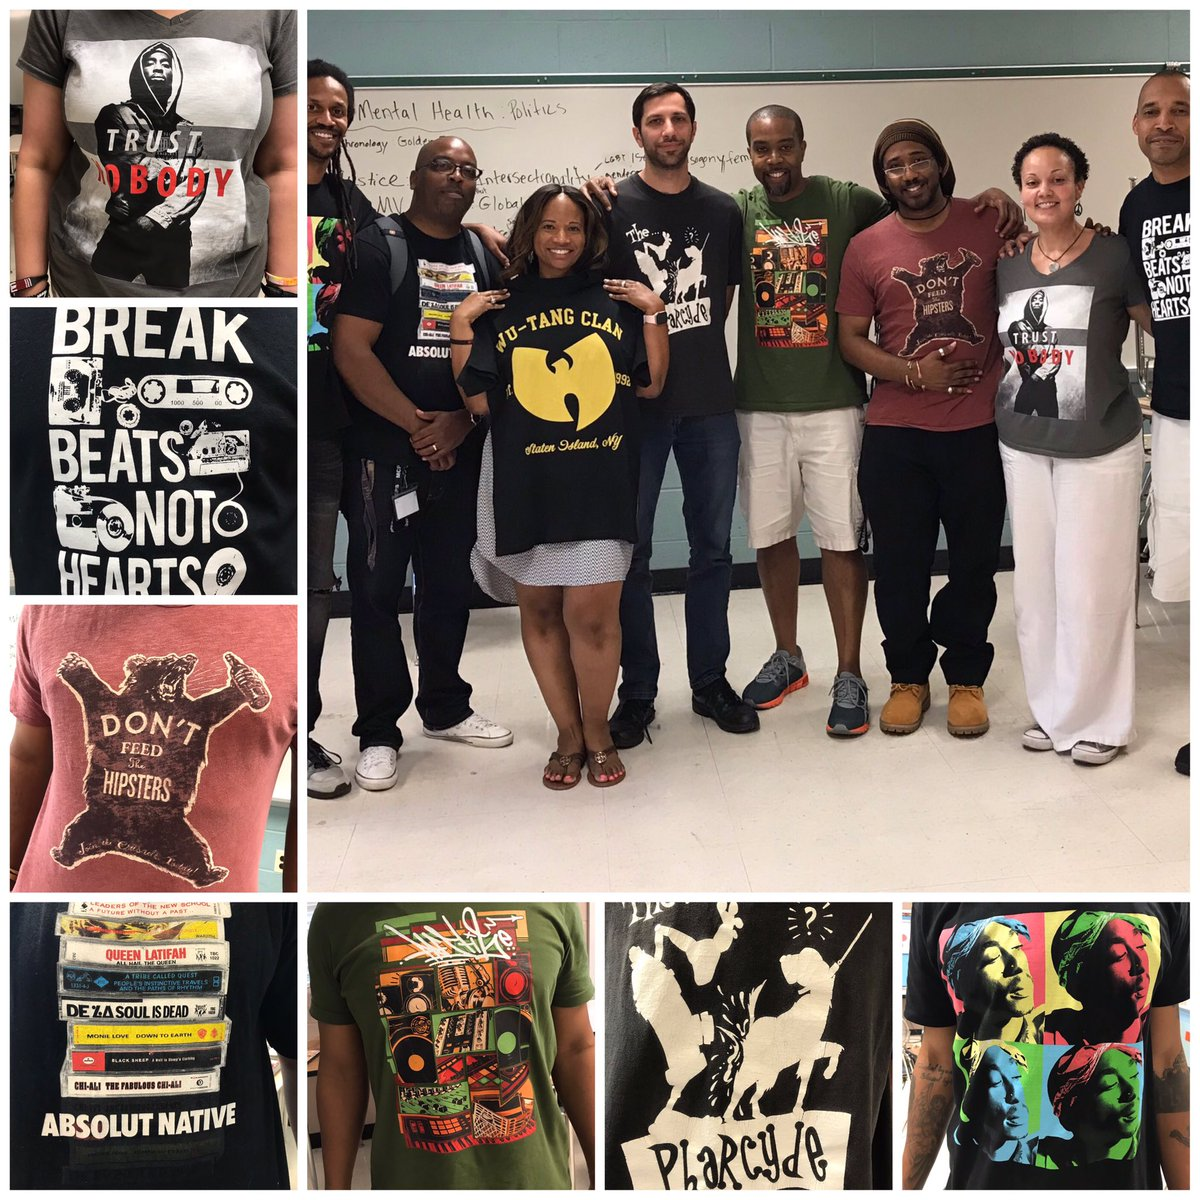 Thanks @MrSmithInspires and team for your leadership, creativity, and commitment to making the new Hip Hop History and Culture course a great learning experience for our students! #CurriculumBuilders